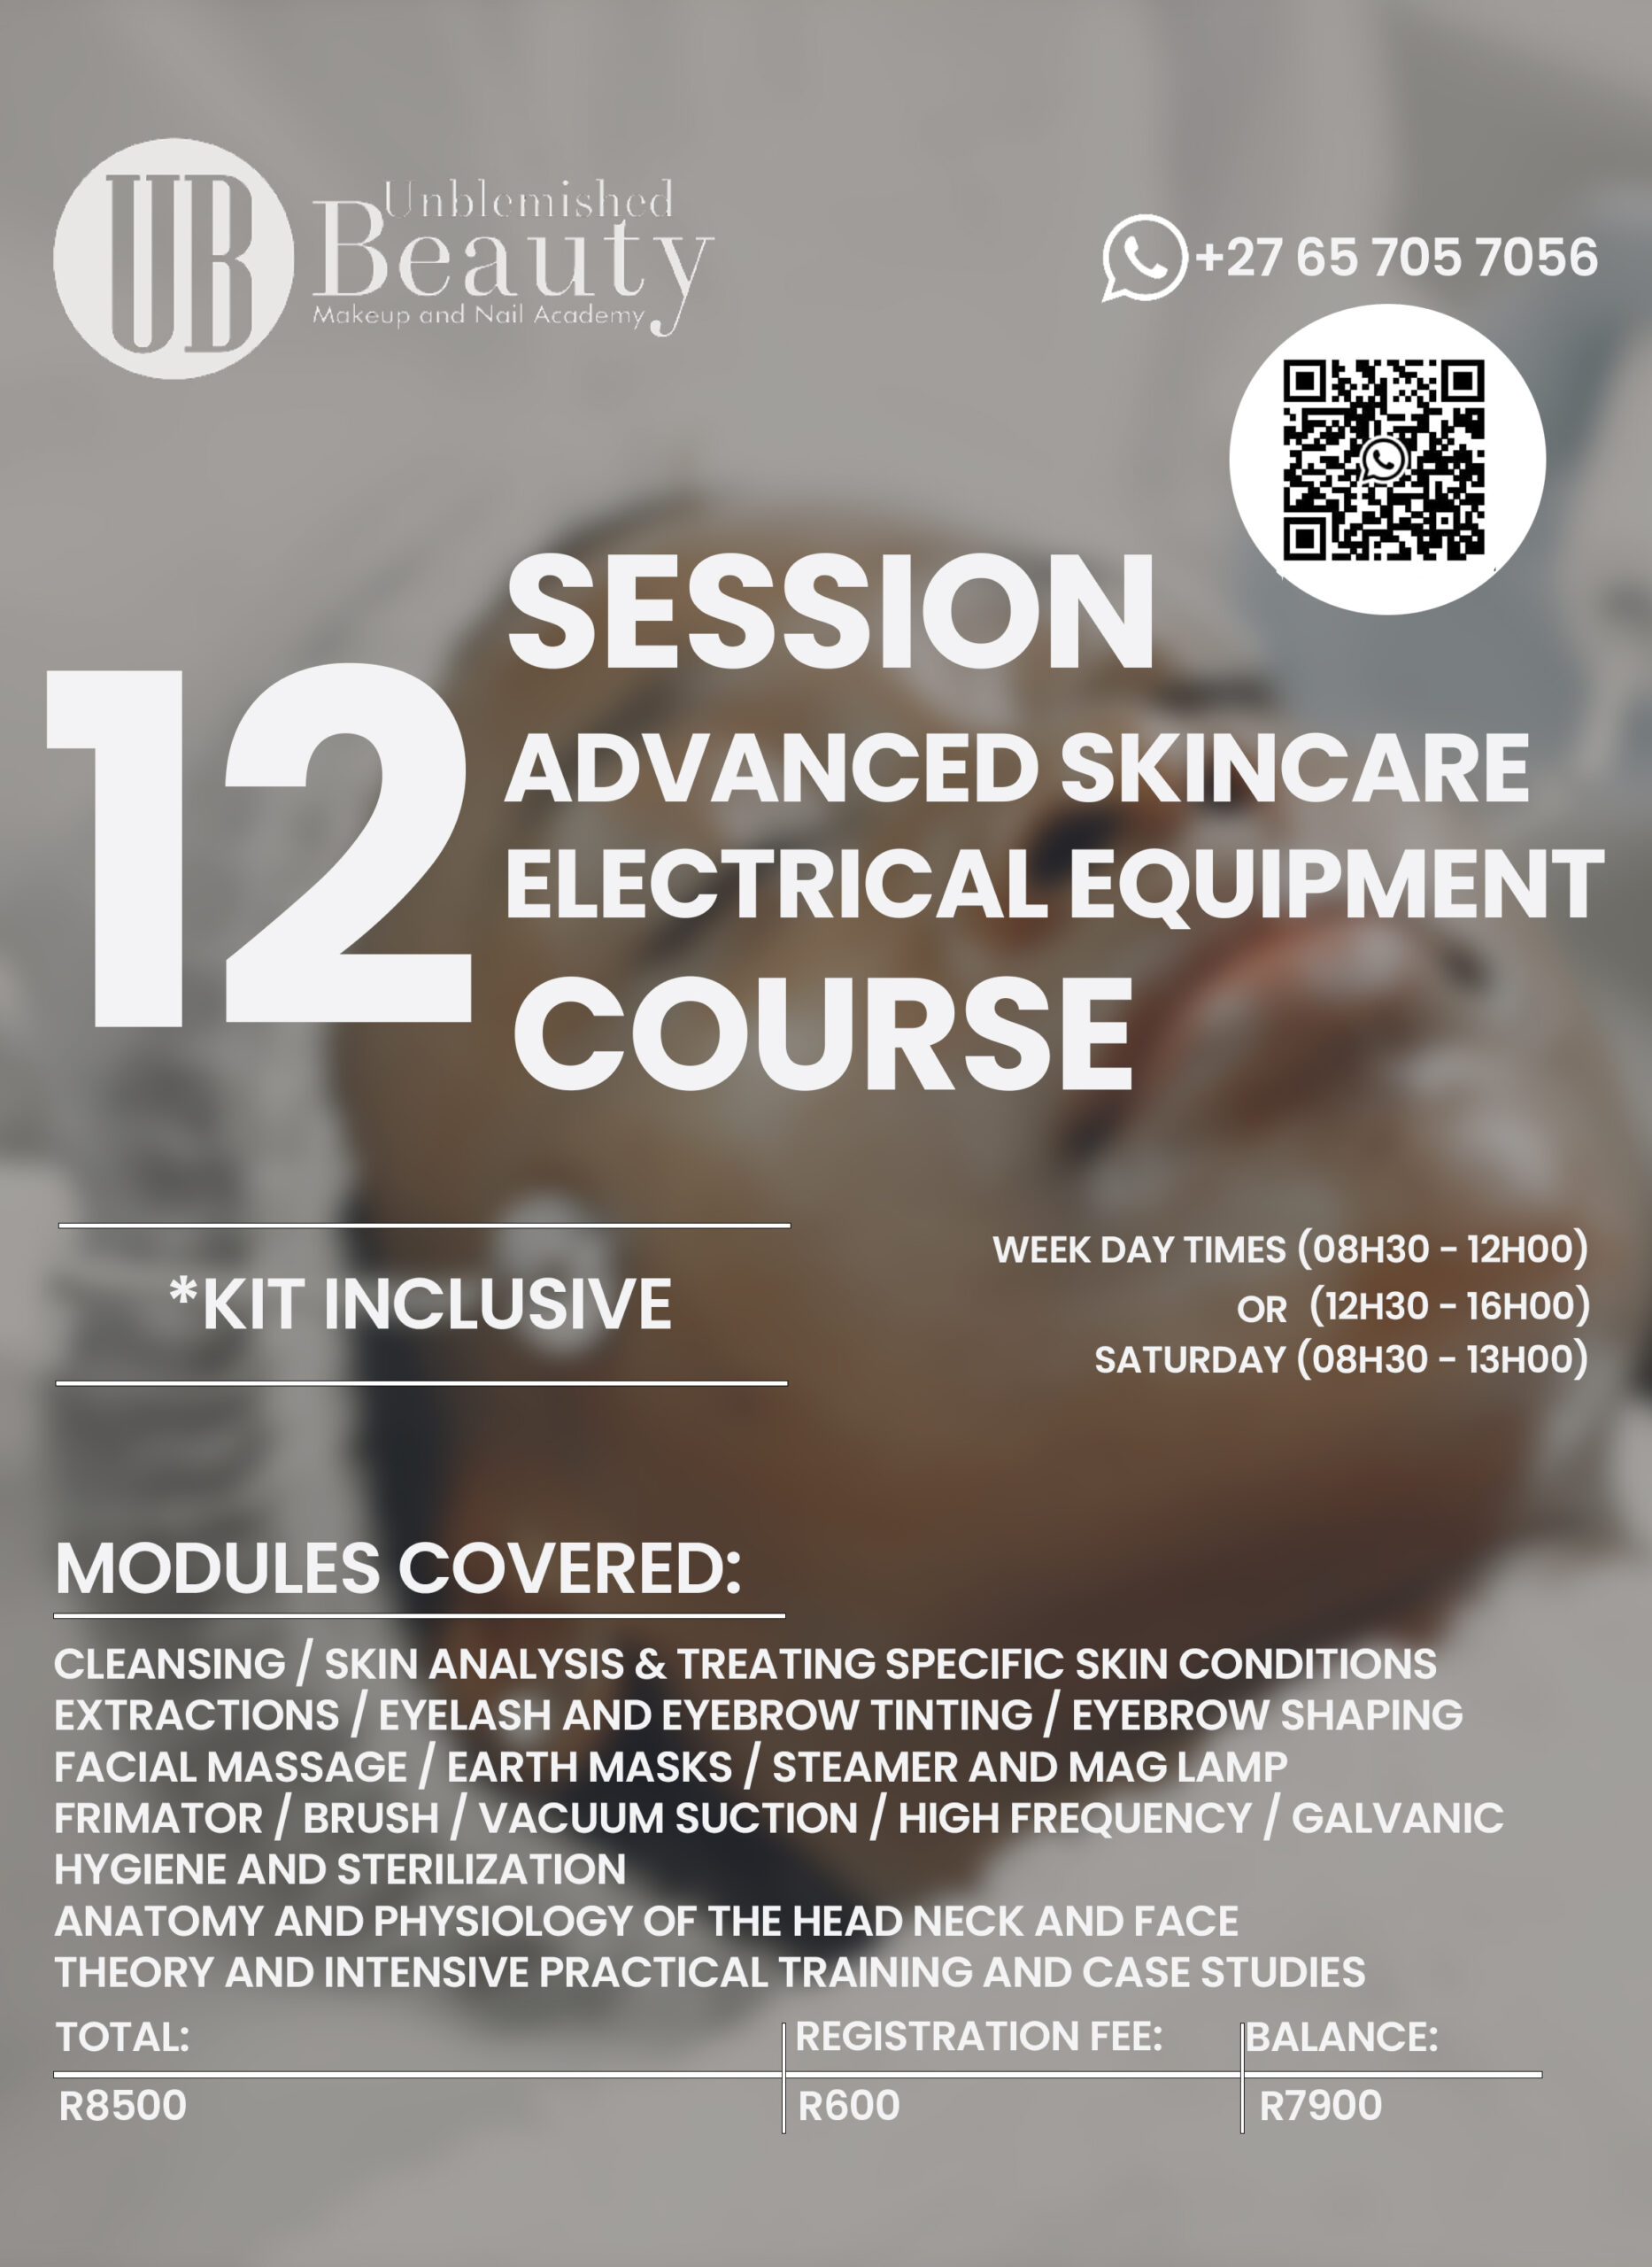 Unblemished Beauty Course Posters- Advanced Skincare Electrical Equipment 2